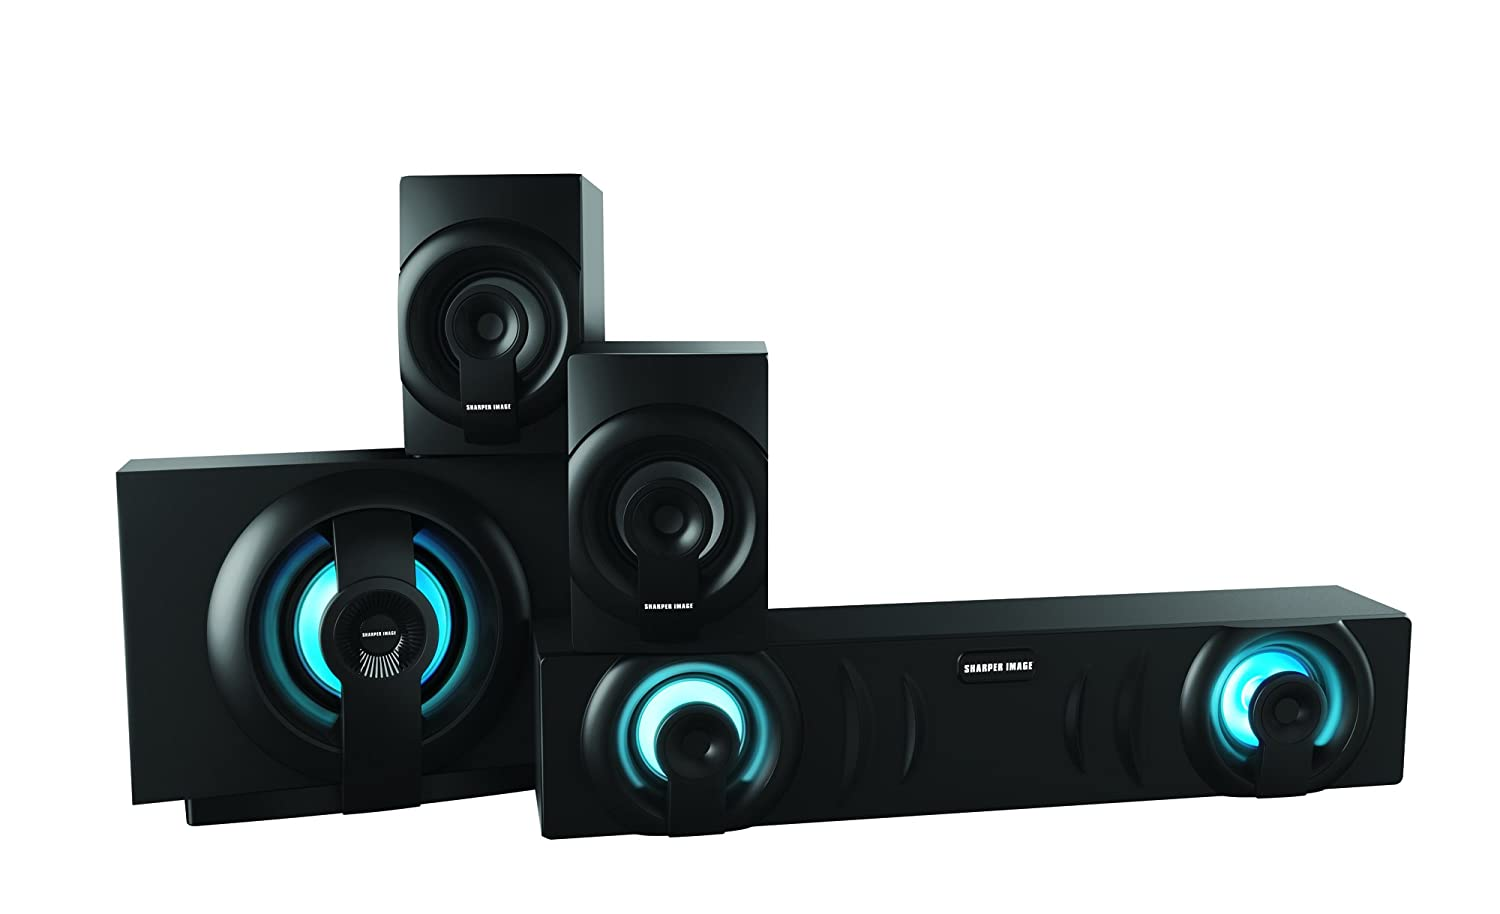 Sharper Image SBT3009BK Home Theater In a Box 3.1 Sound System With Subwoofer, Bluetooth Streaming From Any Device, Blue LED Light Sets The Mood Southern Telecom